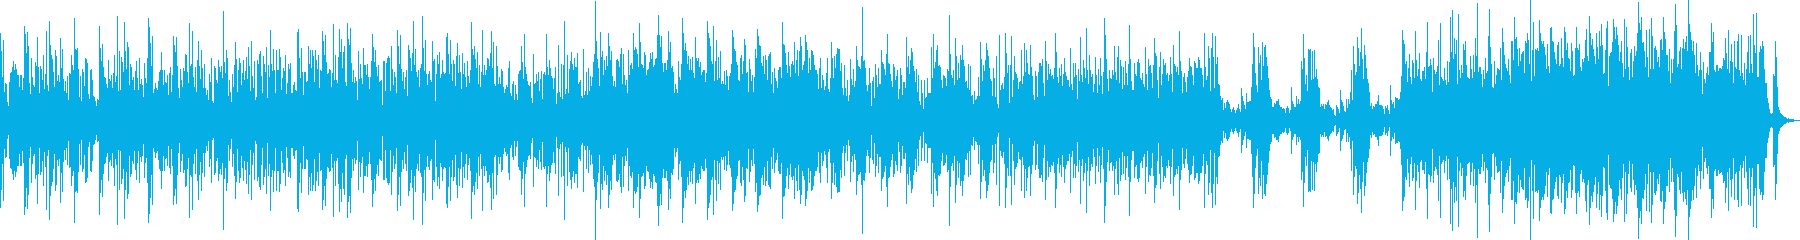 BGM that does not get in the way of technology's reproduced waveform